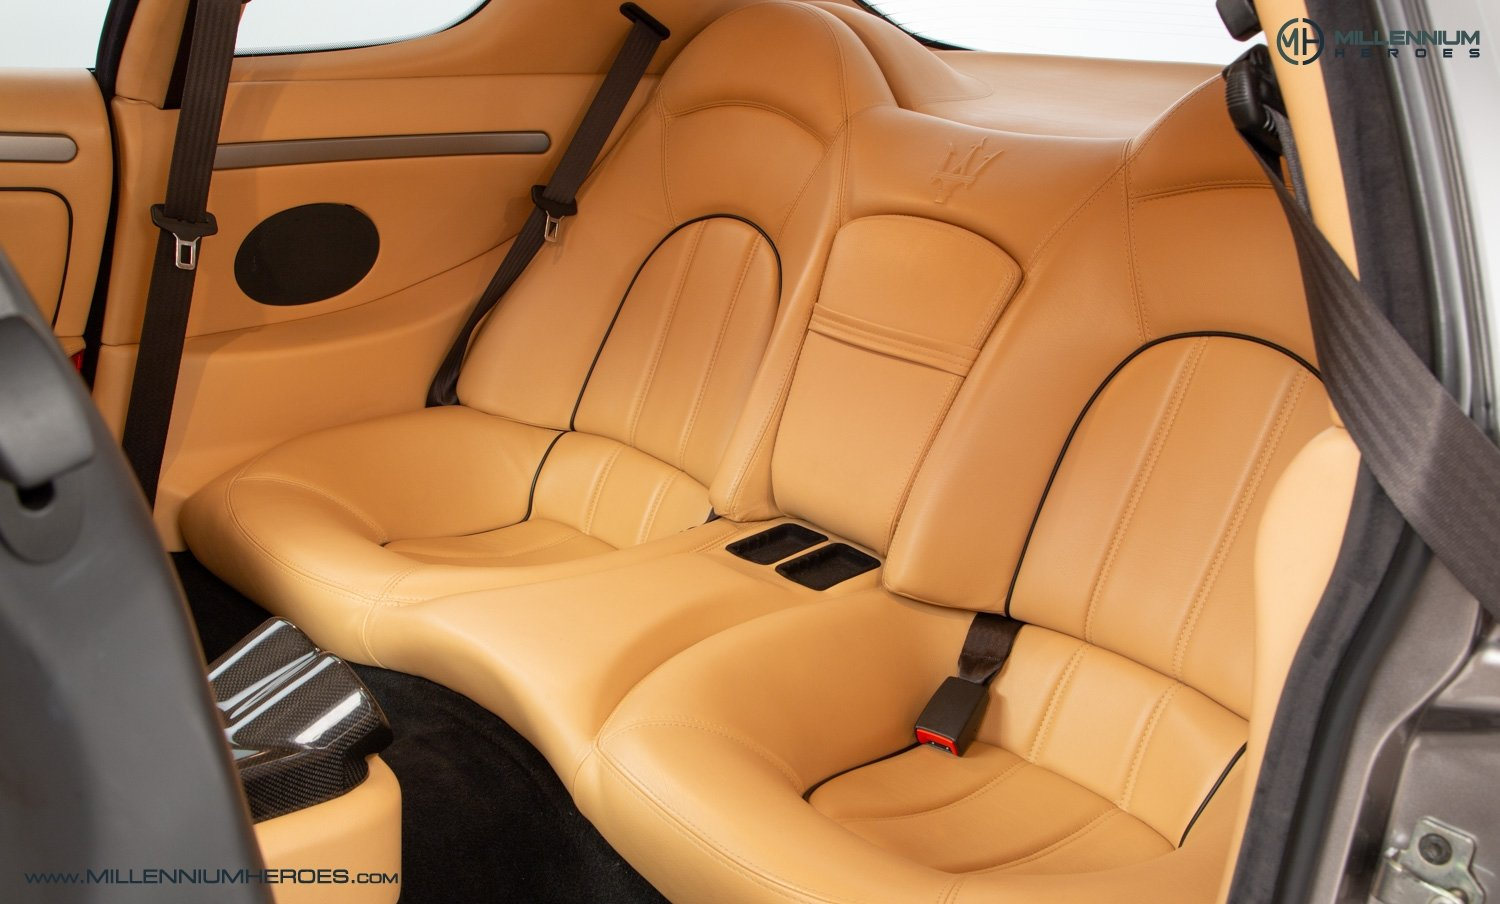 2006 MASERATI COUPE V8 GRANSPORT LE // 44K MILES //  1 OF 107 For Sale (picture 14 of 22)